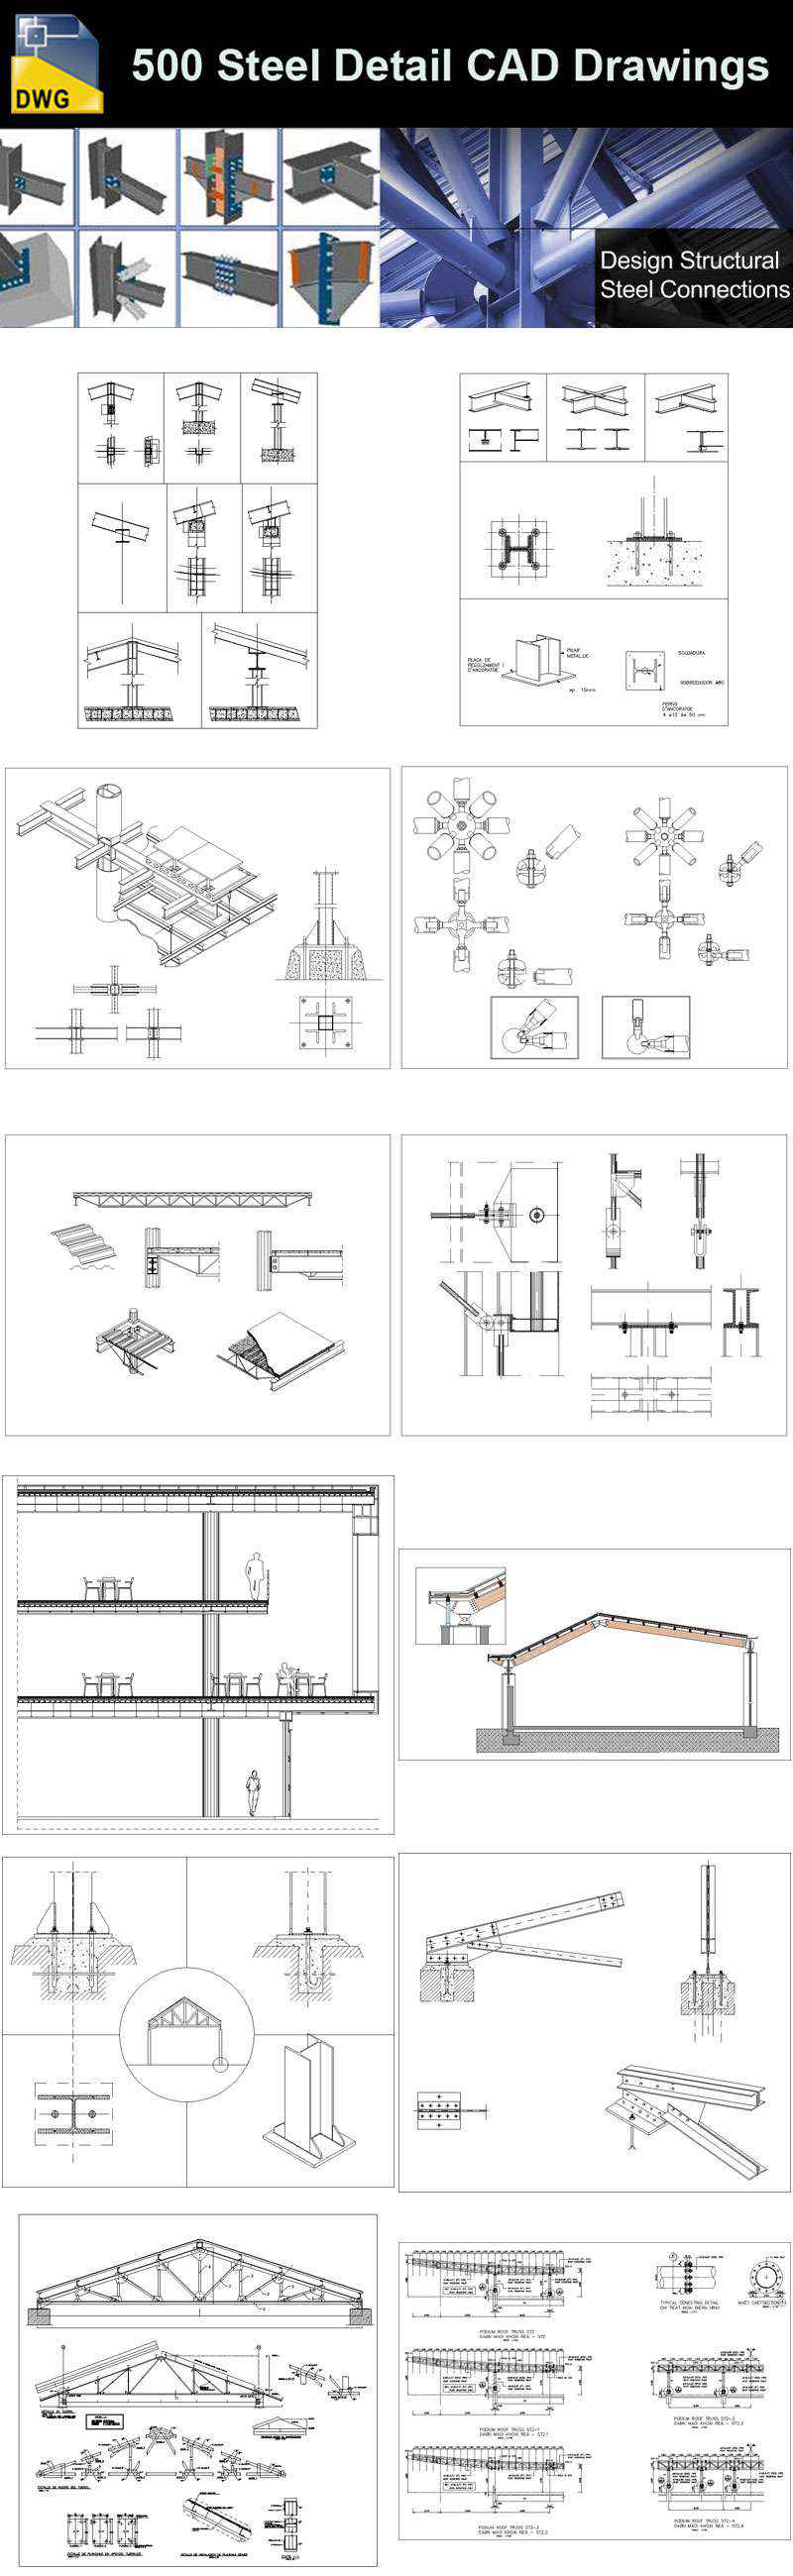 Over 500  various type of Steel Structure Details CAD Drawings. Over 500  various type of Steel Structure Details CAD Drawings